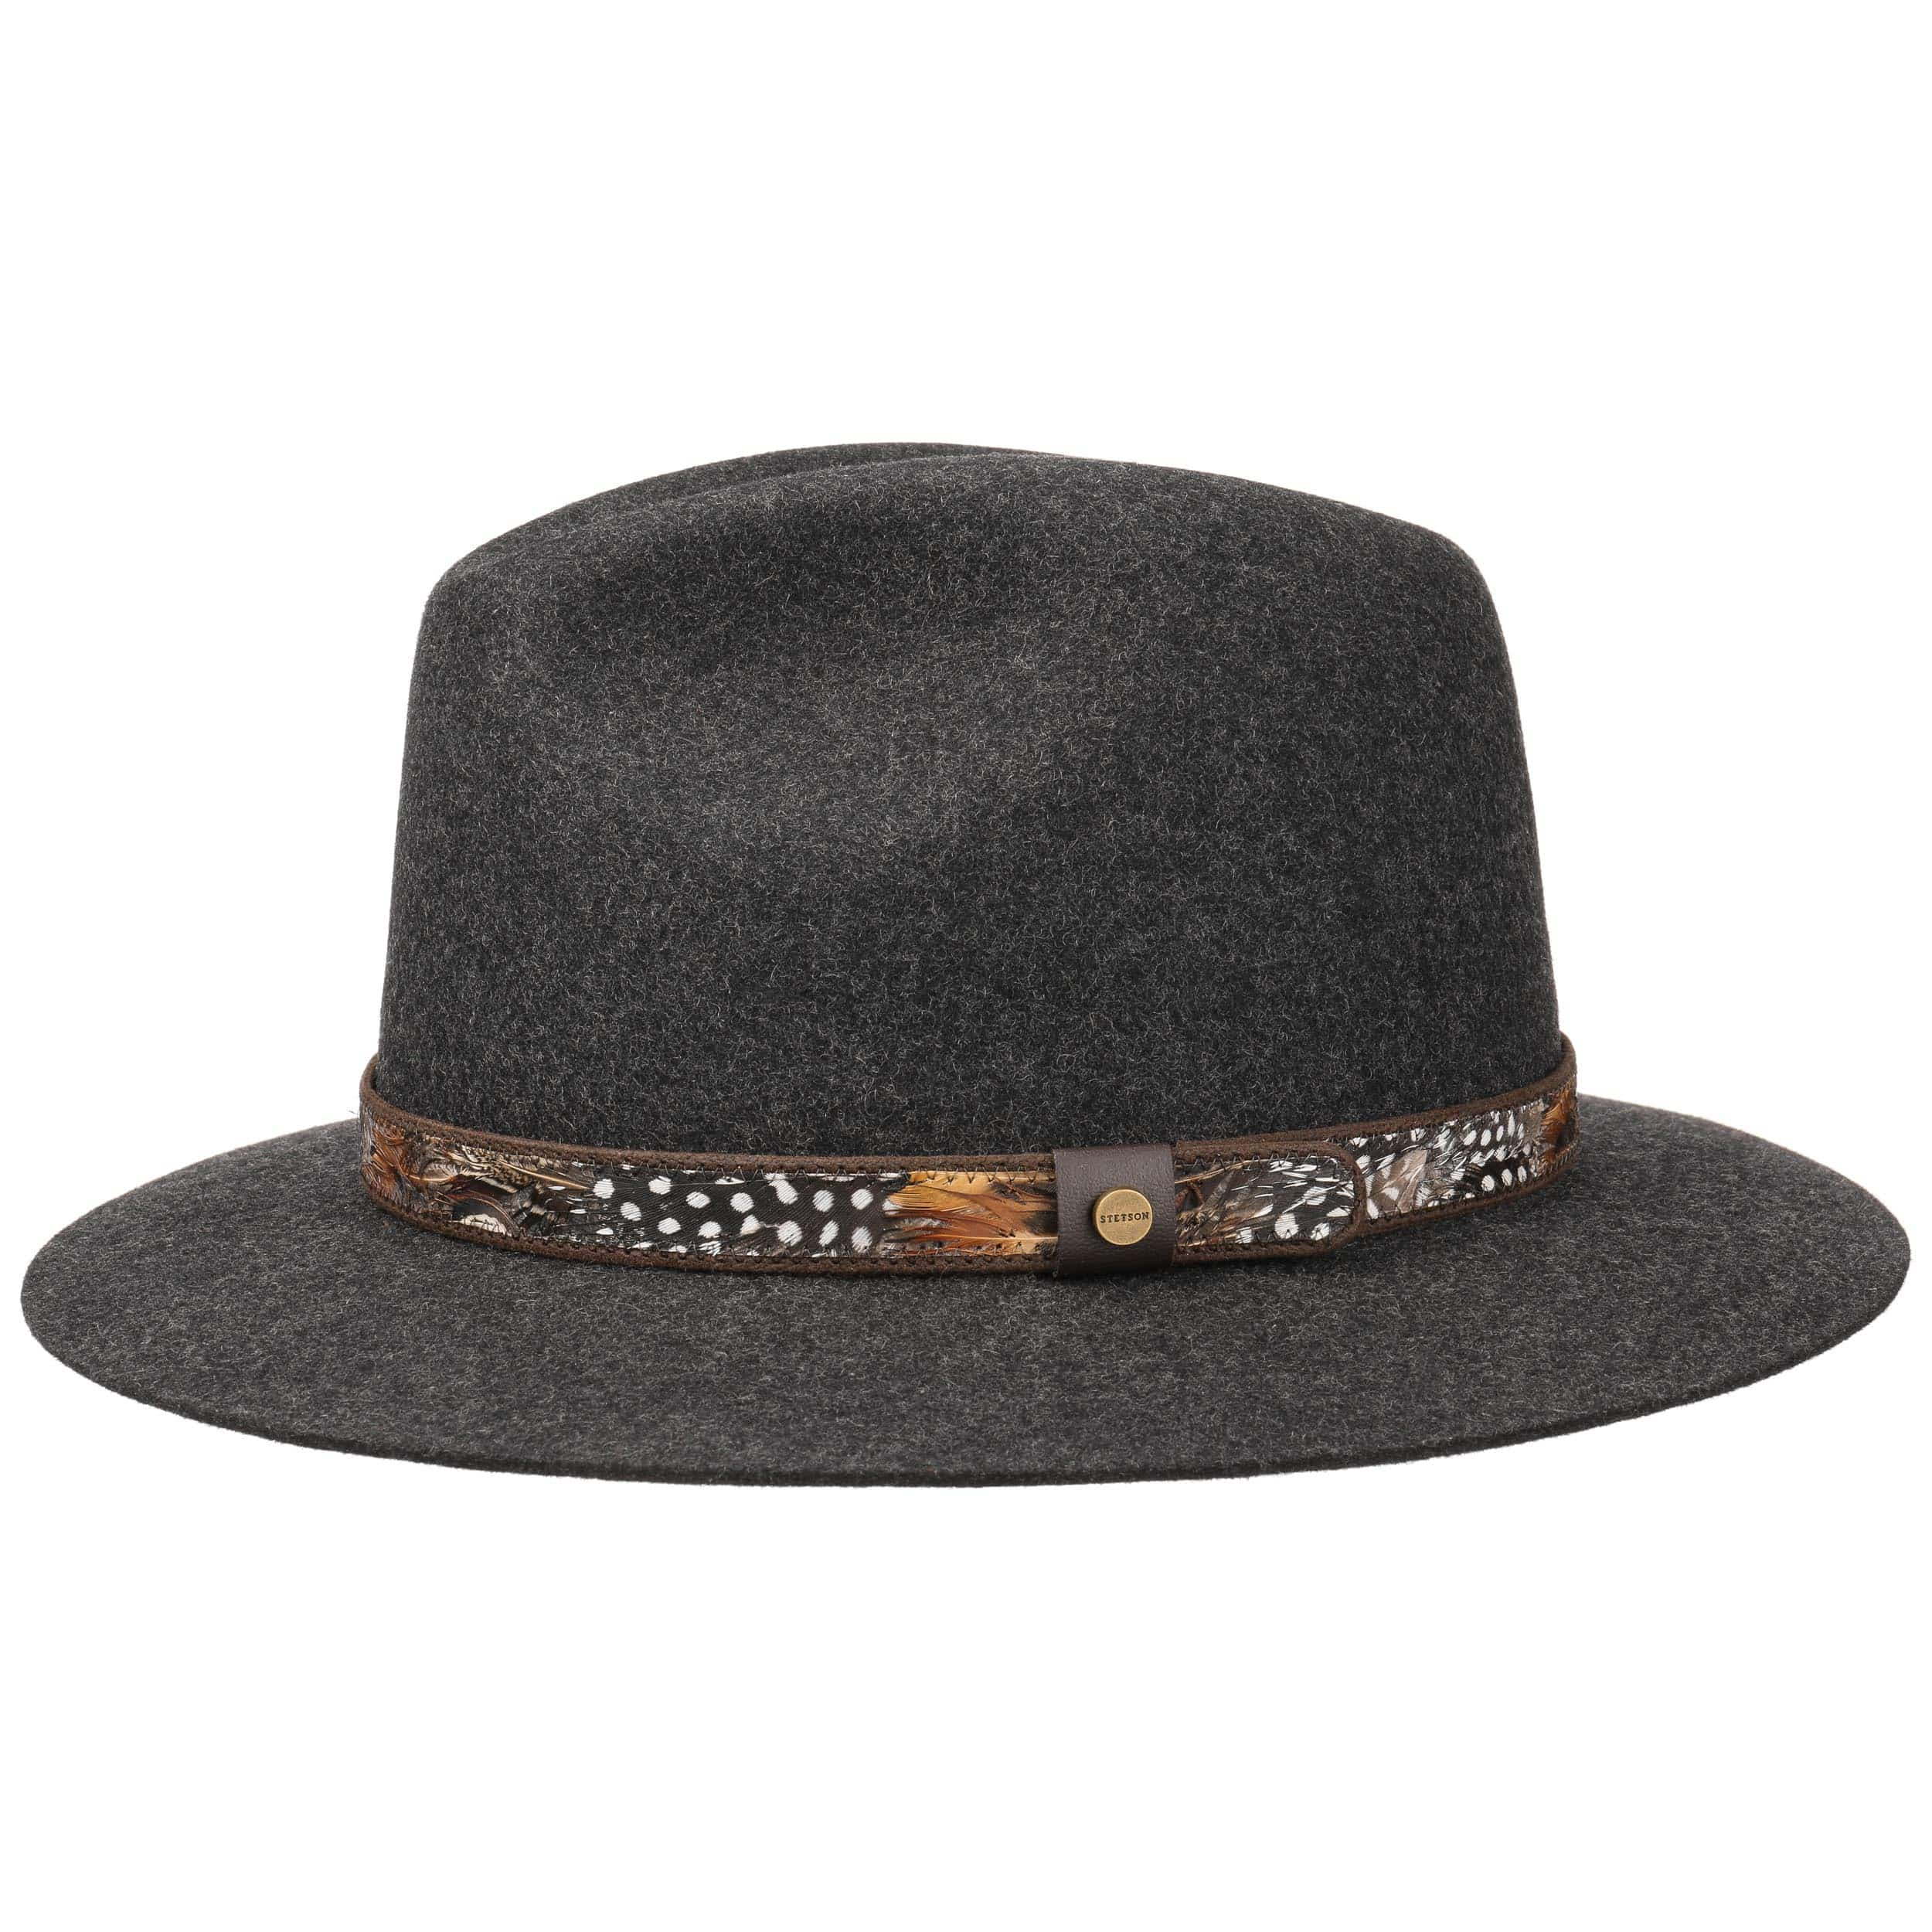 Feather Trim Traveller Felt Hat by Stetson Felt hats Stetson Deals Online Discount Free Shipping 2018 New Cheap Sale Really x5yW9